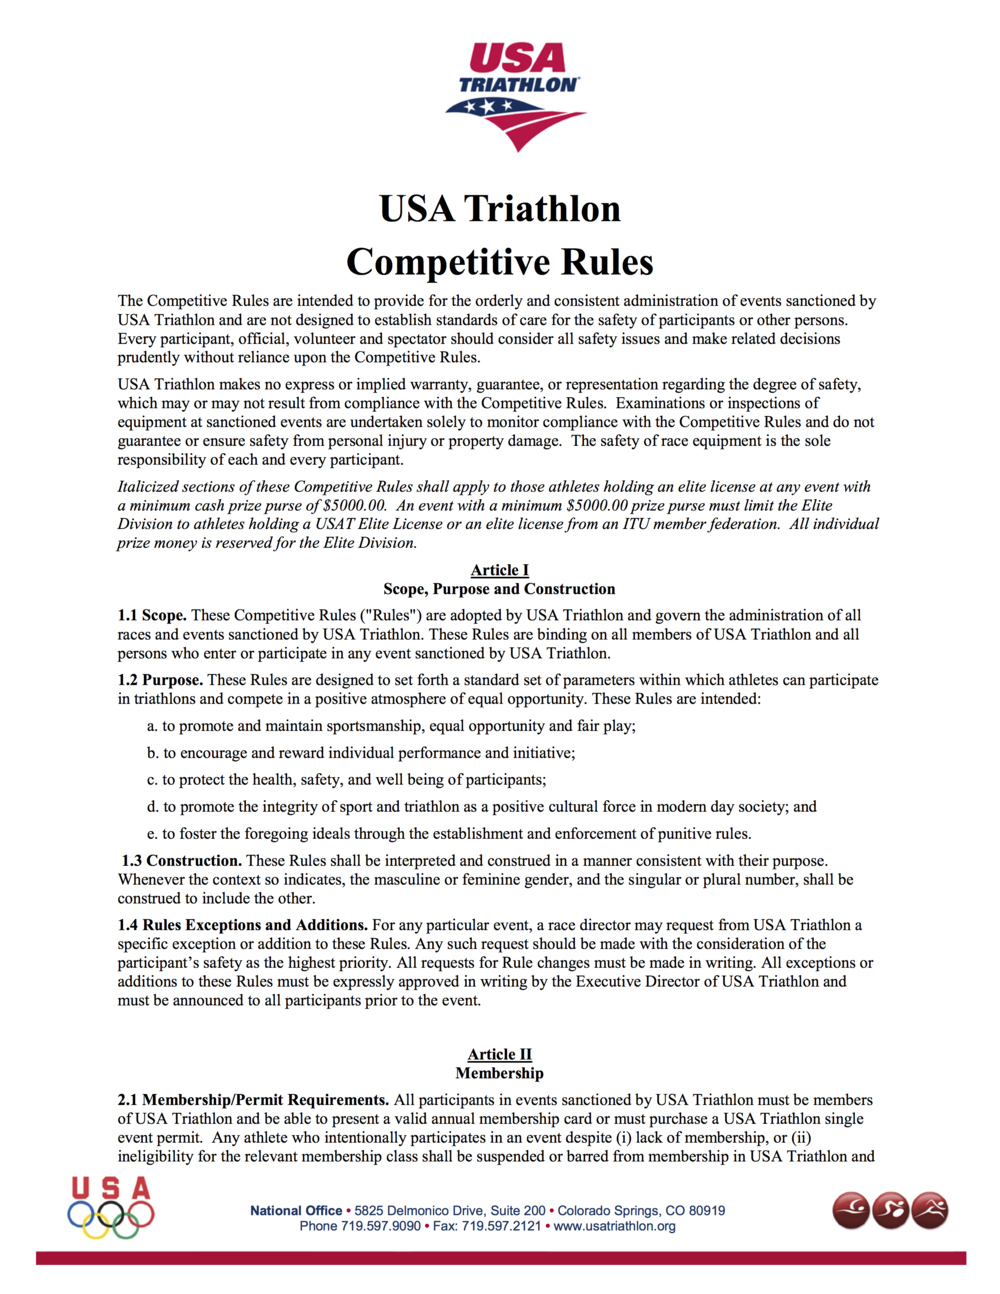 USAT Competitive Rules